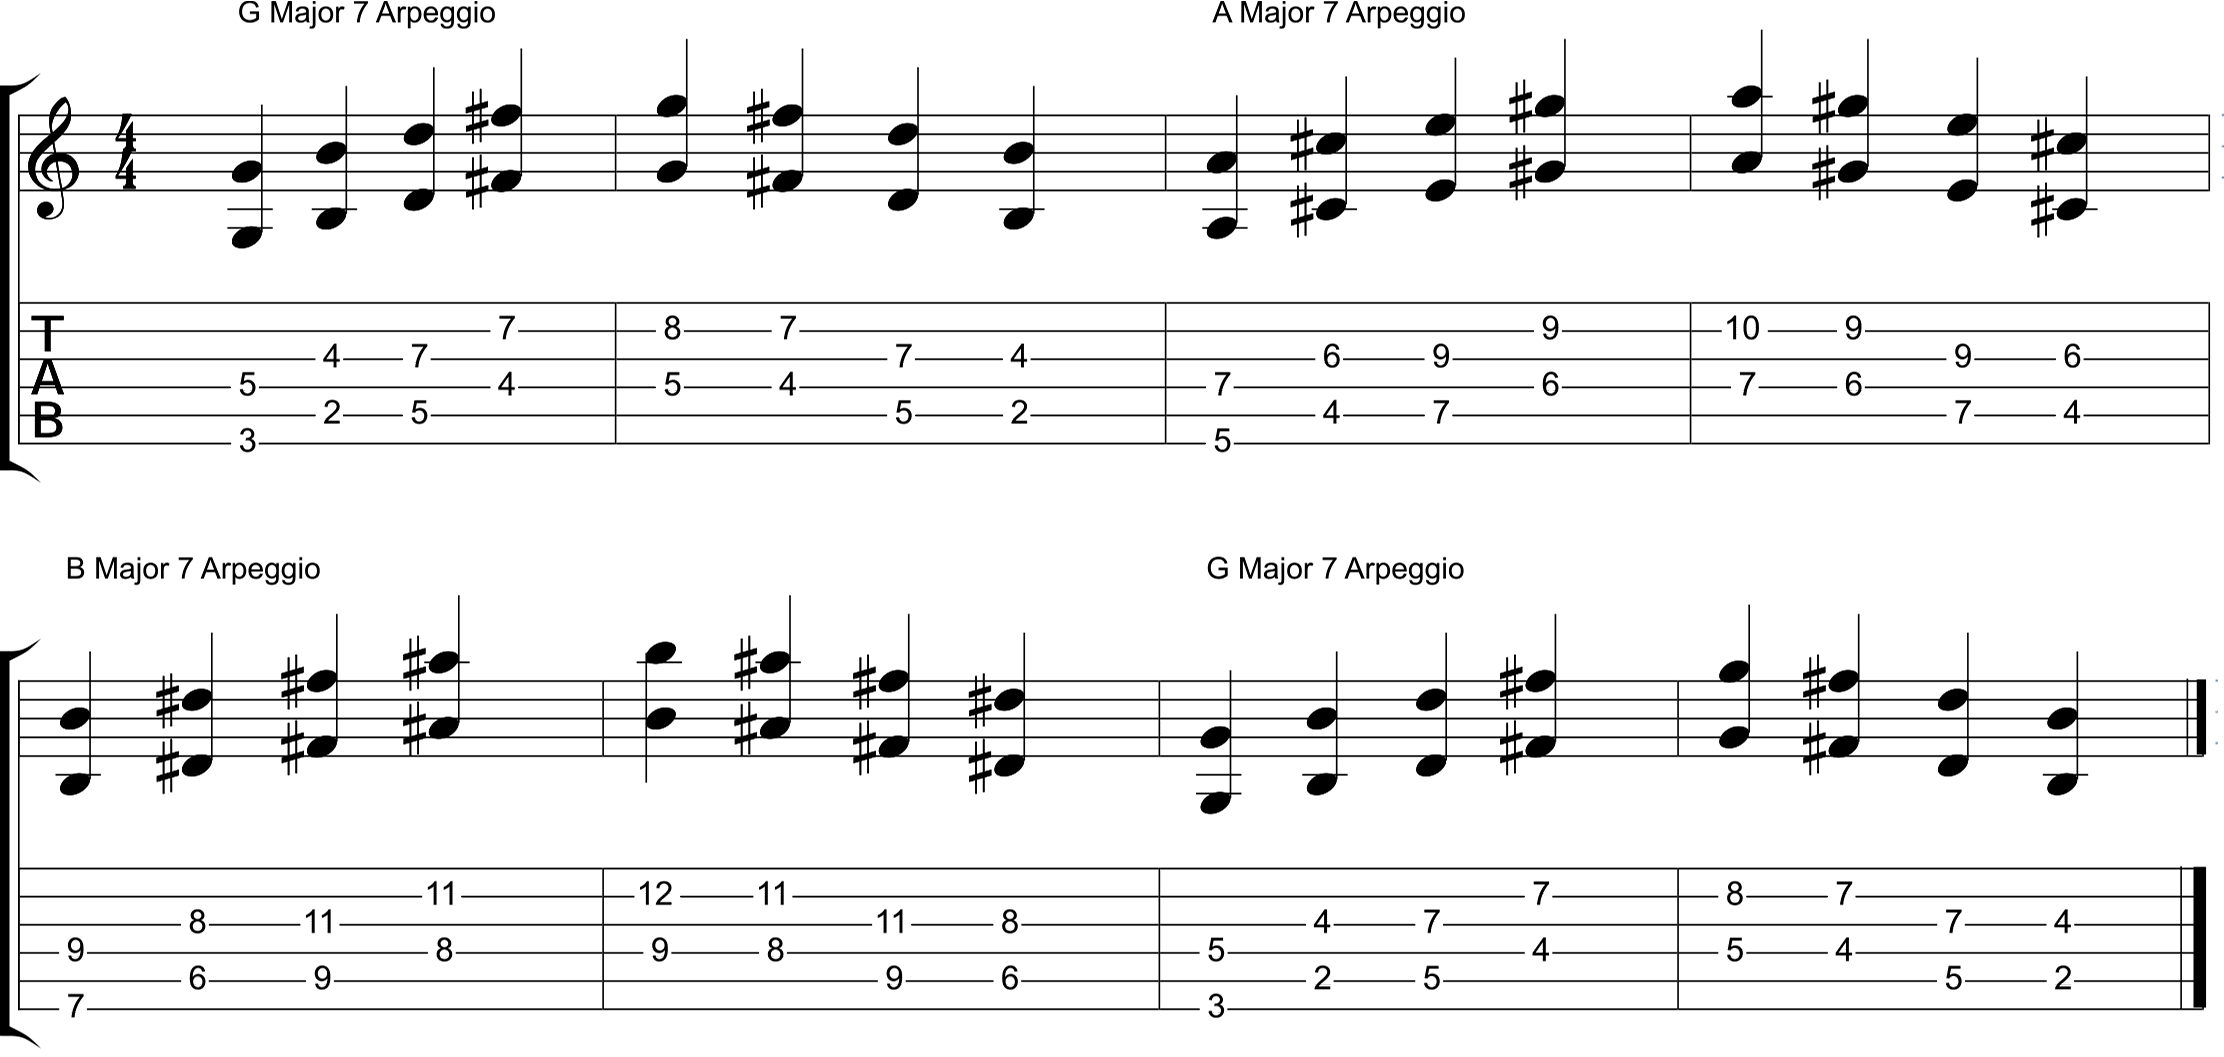 Octave shape arpeggio guitar picking pattern exercise how to learn the guitar fretboard notes